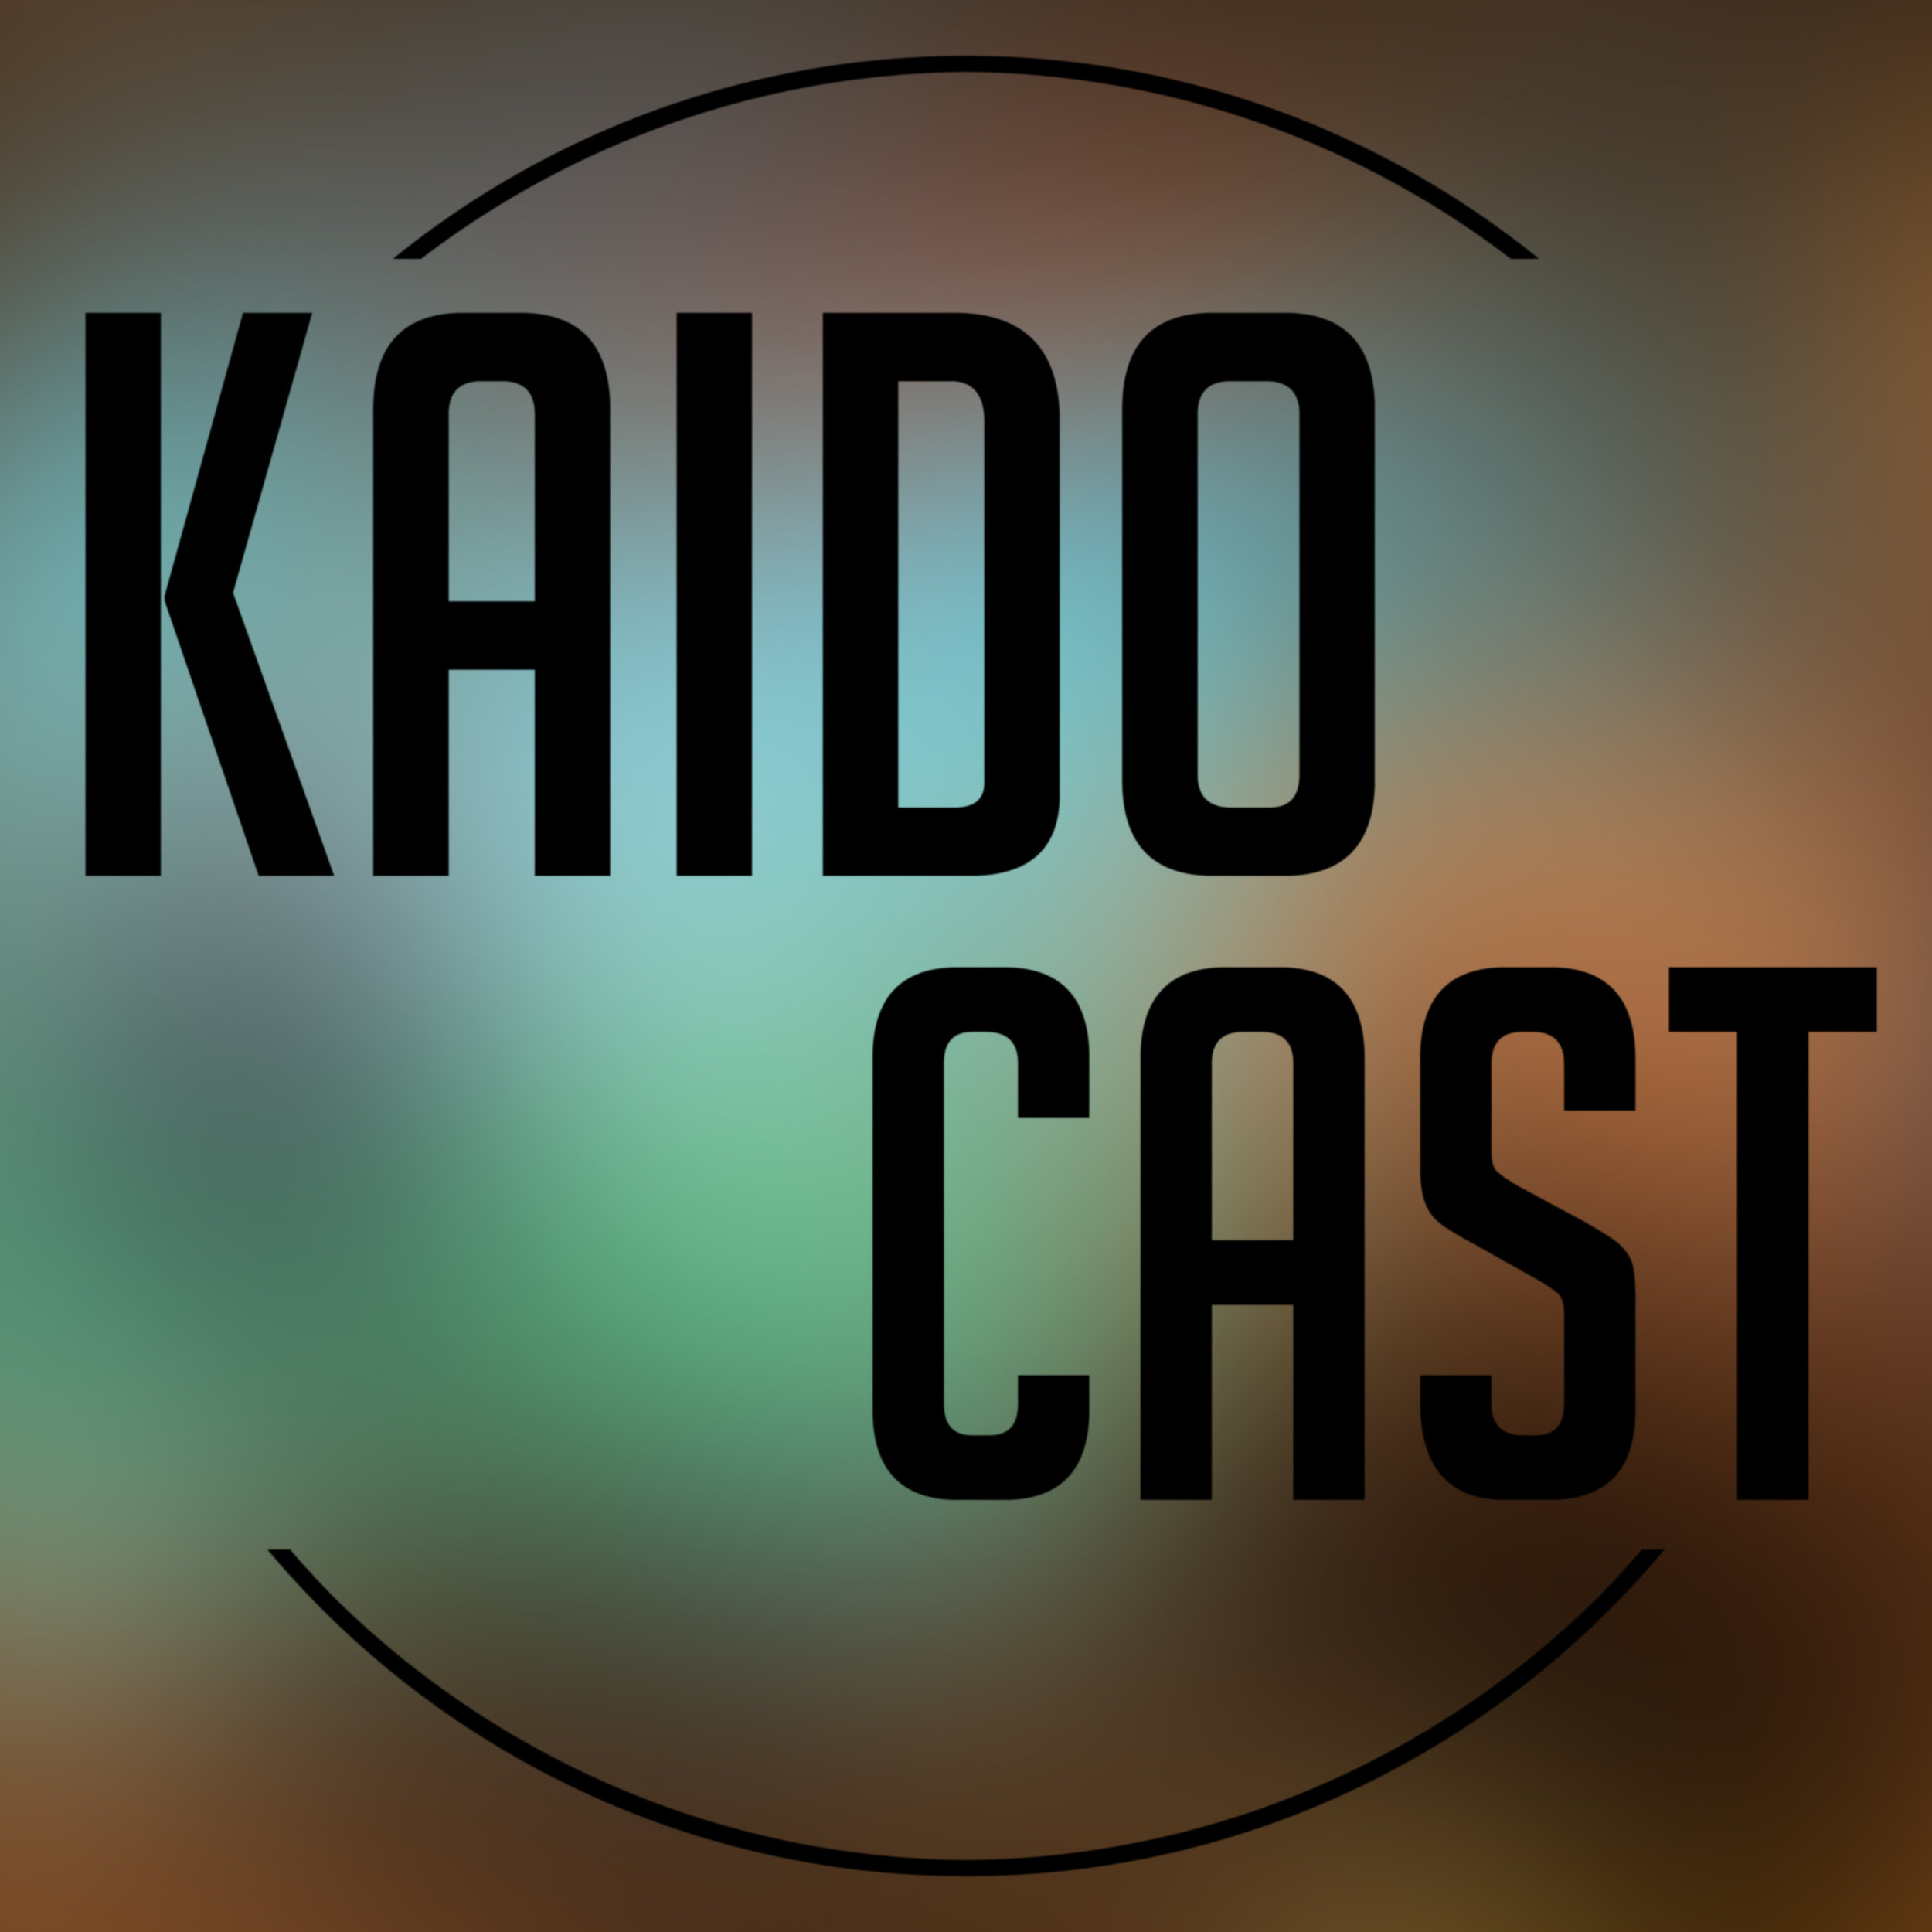 KAIDO Cast 00 - Mic Check - Checking the mic and testing the waters. Hopefully great things to come down the road!